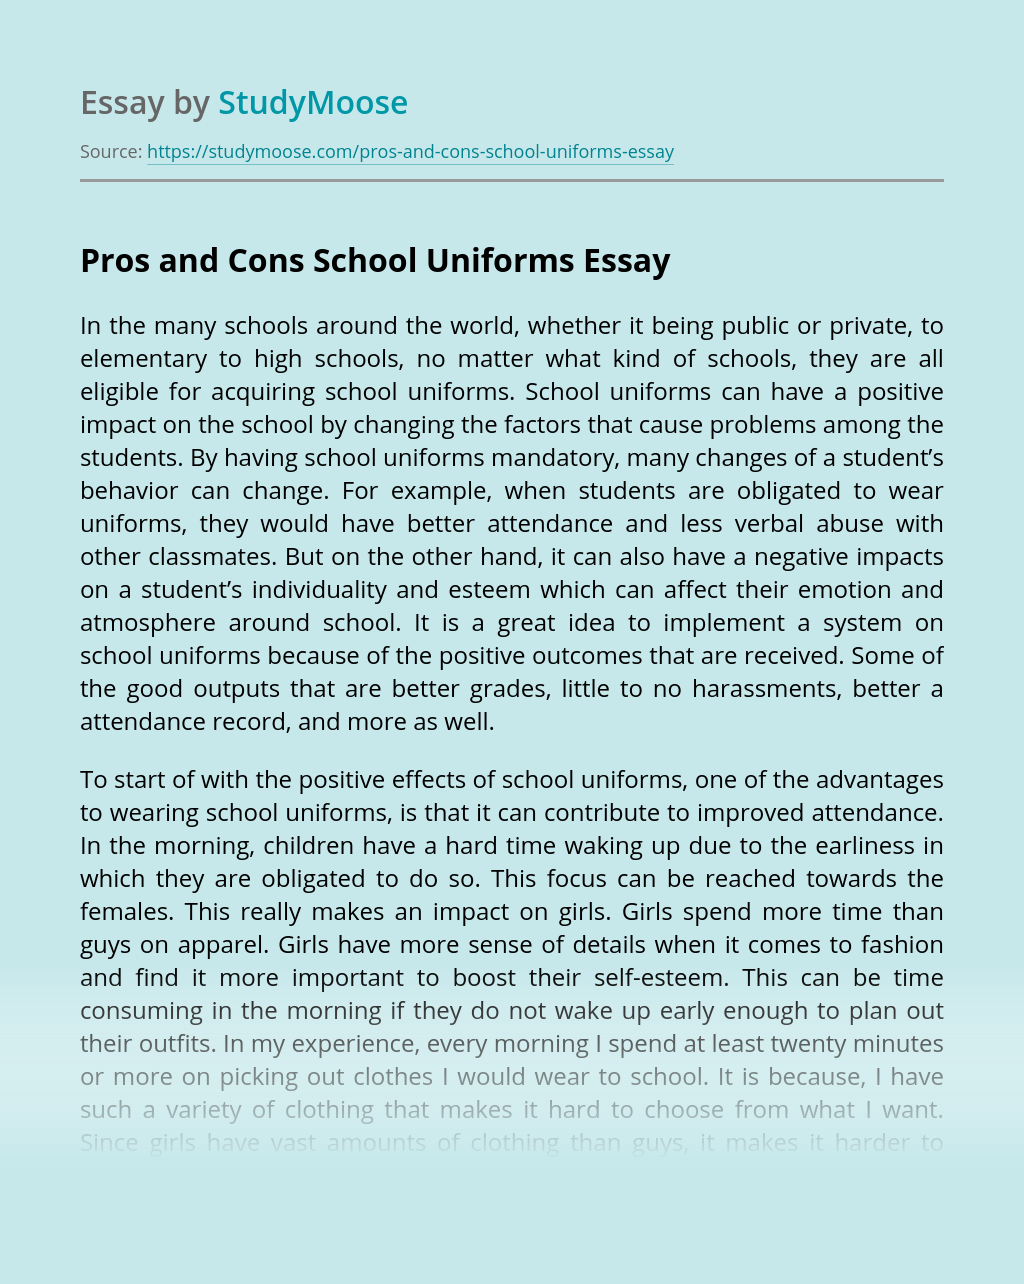 Pros and Cons School Uniforms